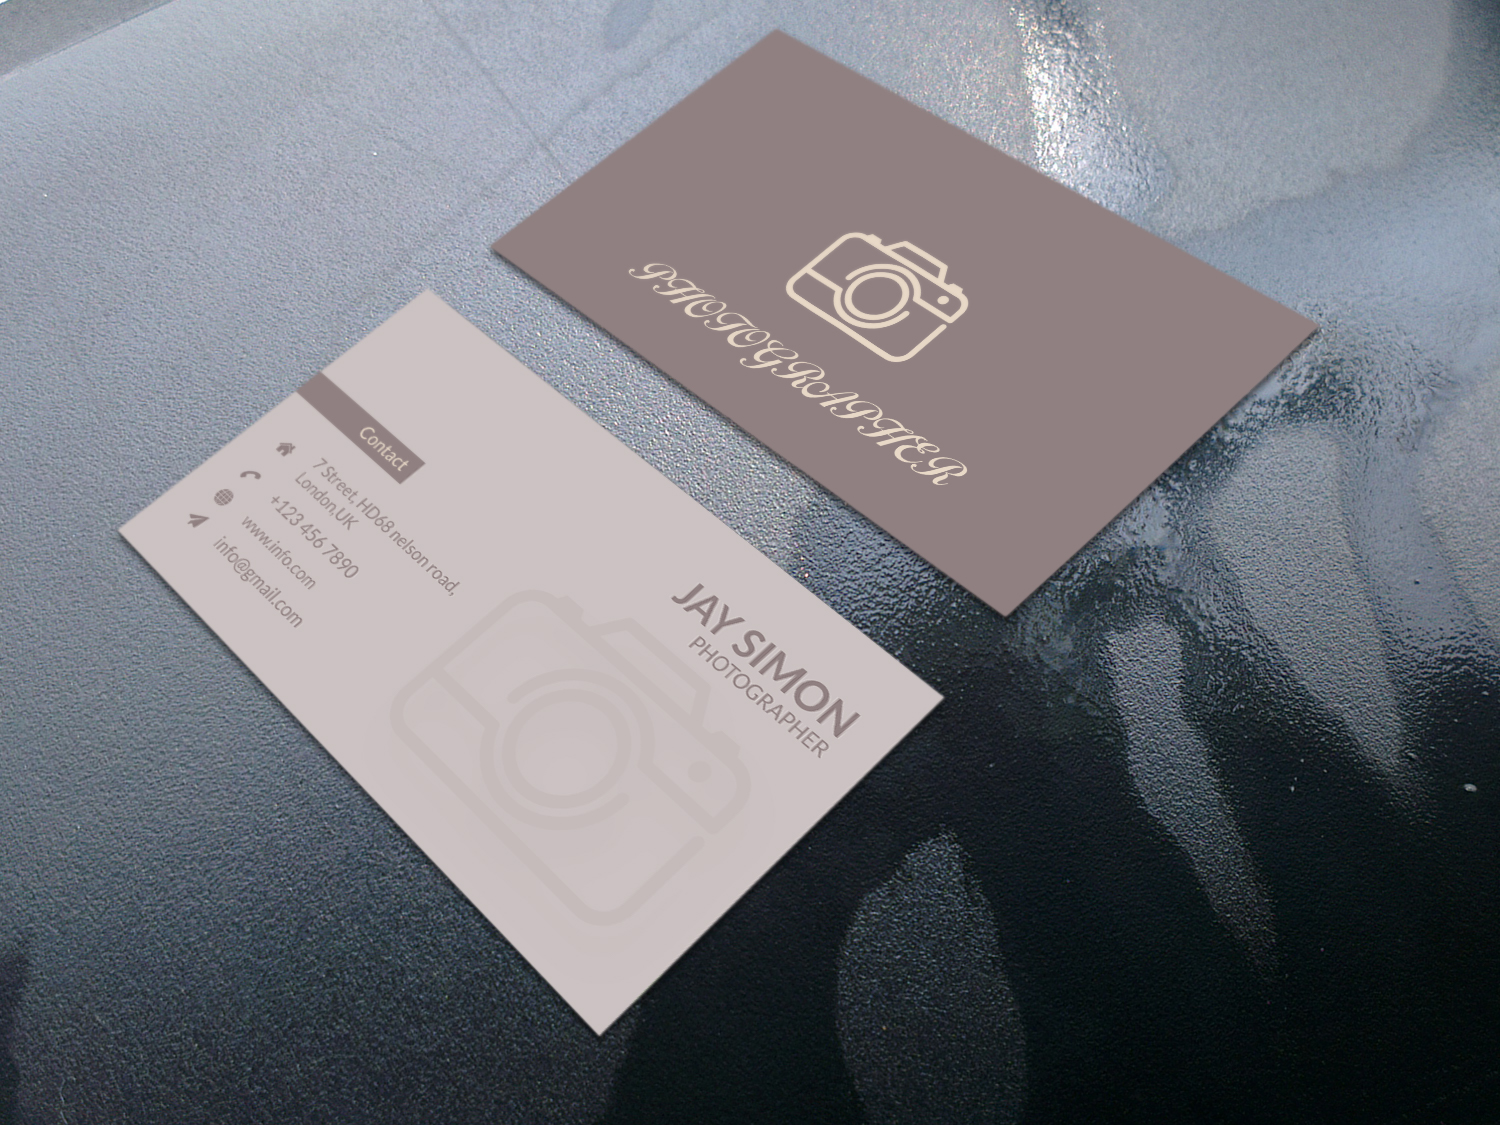 I will create minimalist luxury modern business card design within 12 hours